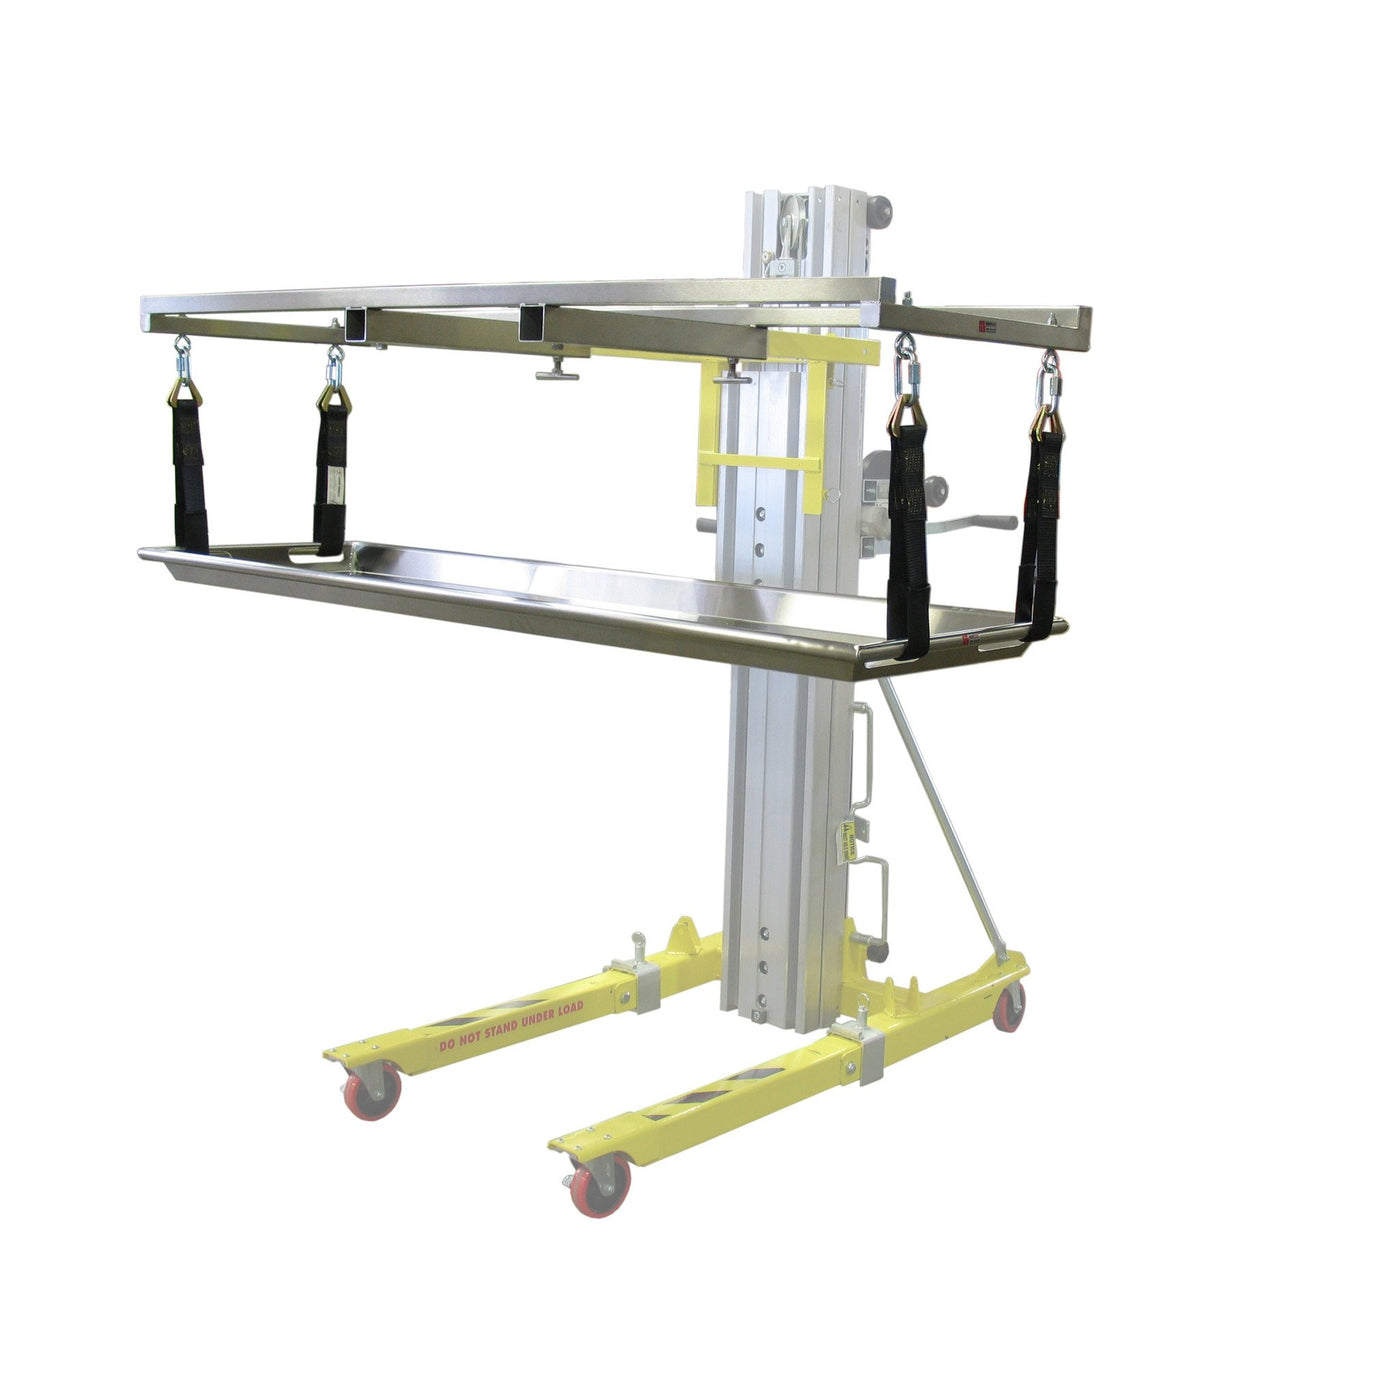 Strap Lift Assembly-Cadaver Handling & Storage Systems-Mortech Manufacturing Company Inc. Quality Stainless Steel Autopsy, Morgue, Funeral Home, Necropsy, Veterinary / Anatomy, Dissection Equipment and Accessories